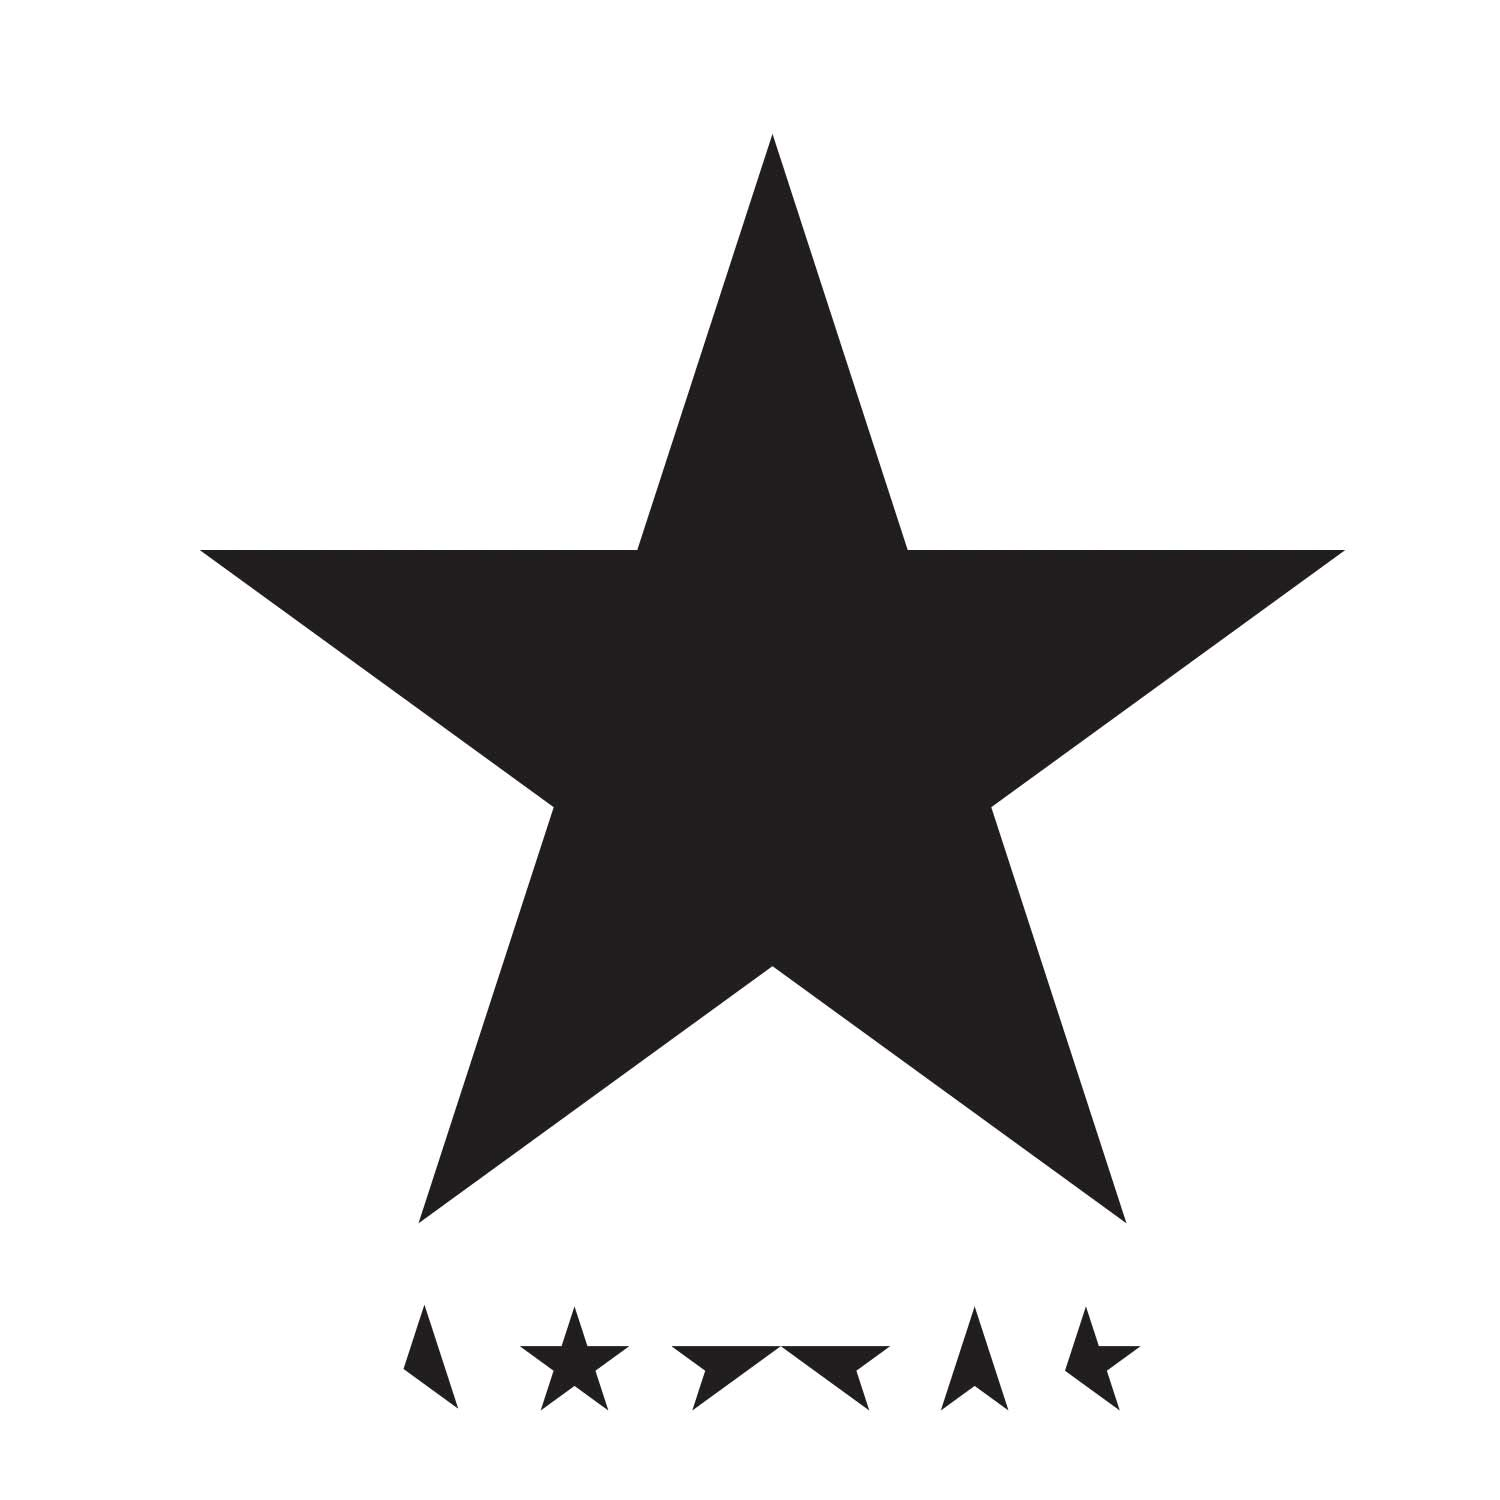 10.18 David Bowie - Blackstar